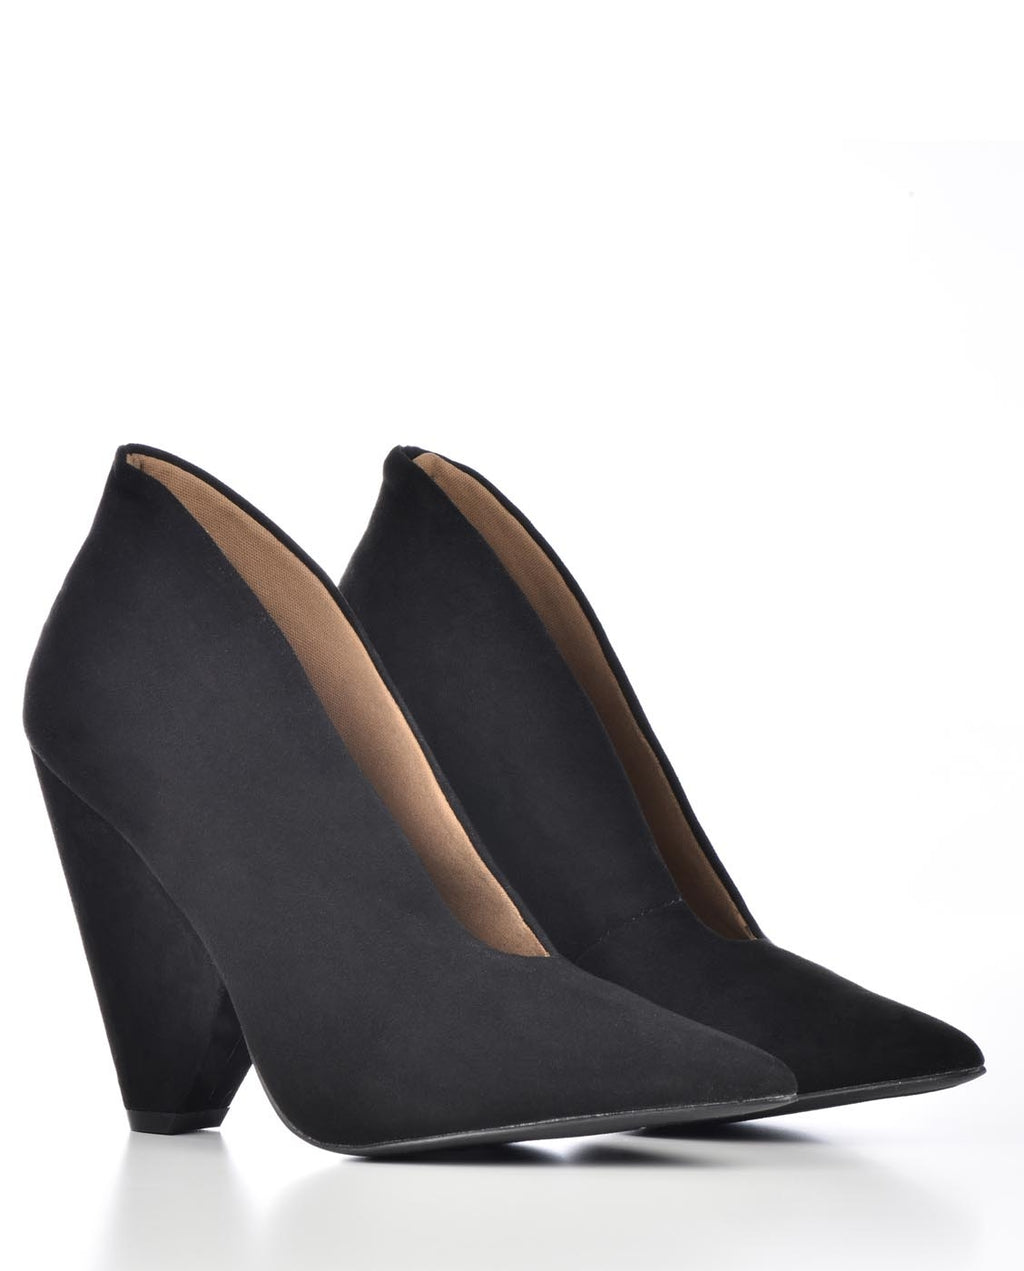 Pointed Toe Cone Heel Pump Bootie - Fashion You Up